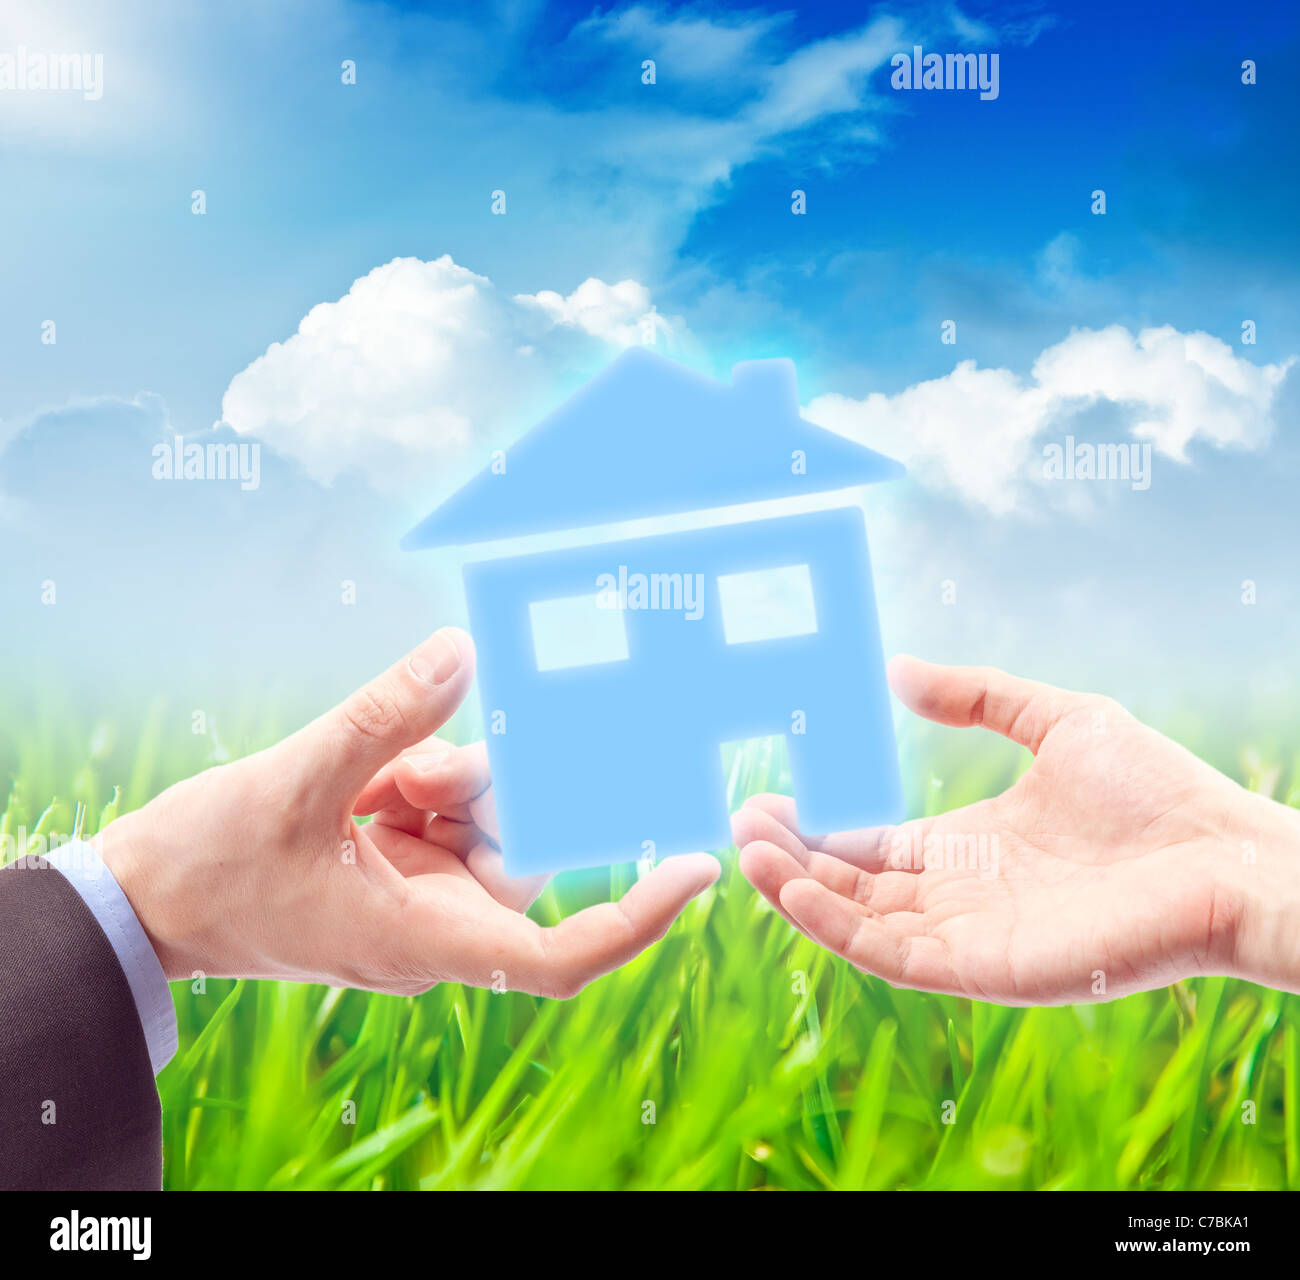 The House in the Hand against the sunny blue sky as a symbol of the real estate business. - Stock Image